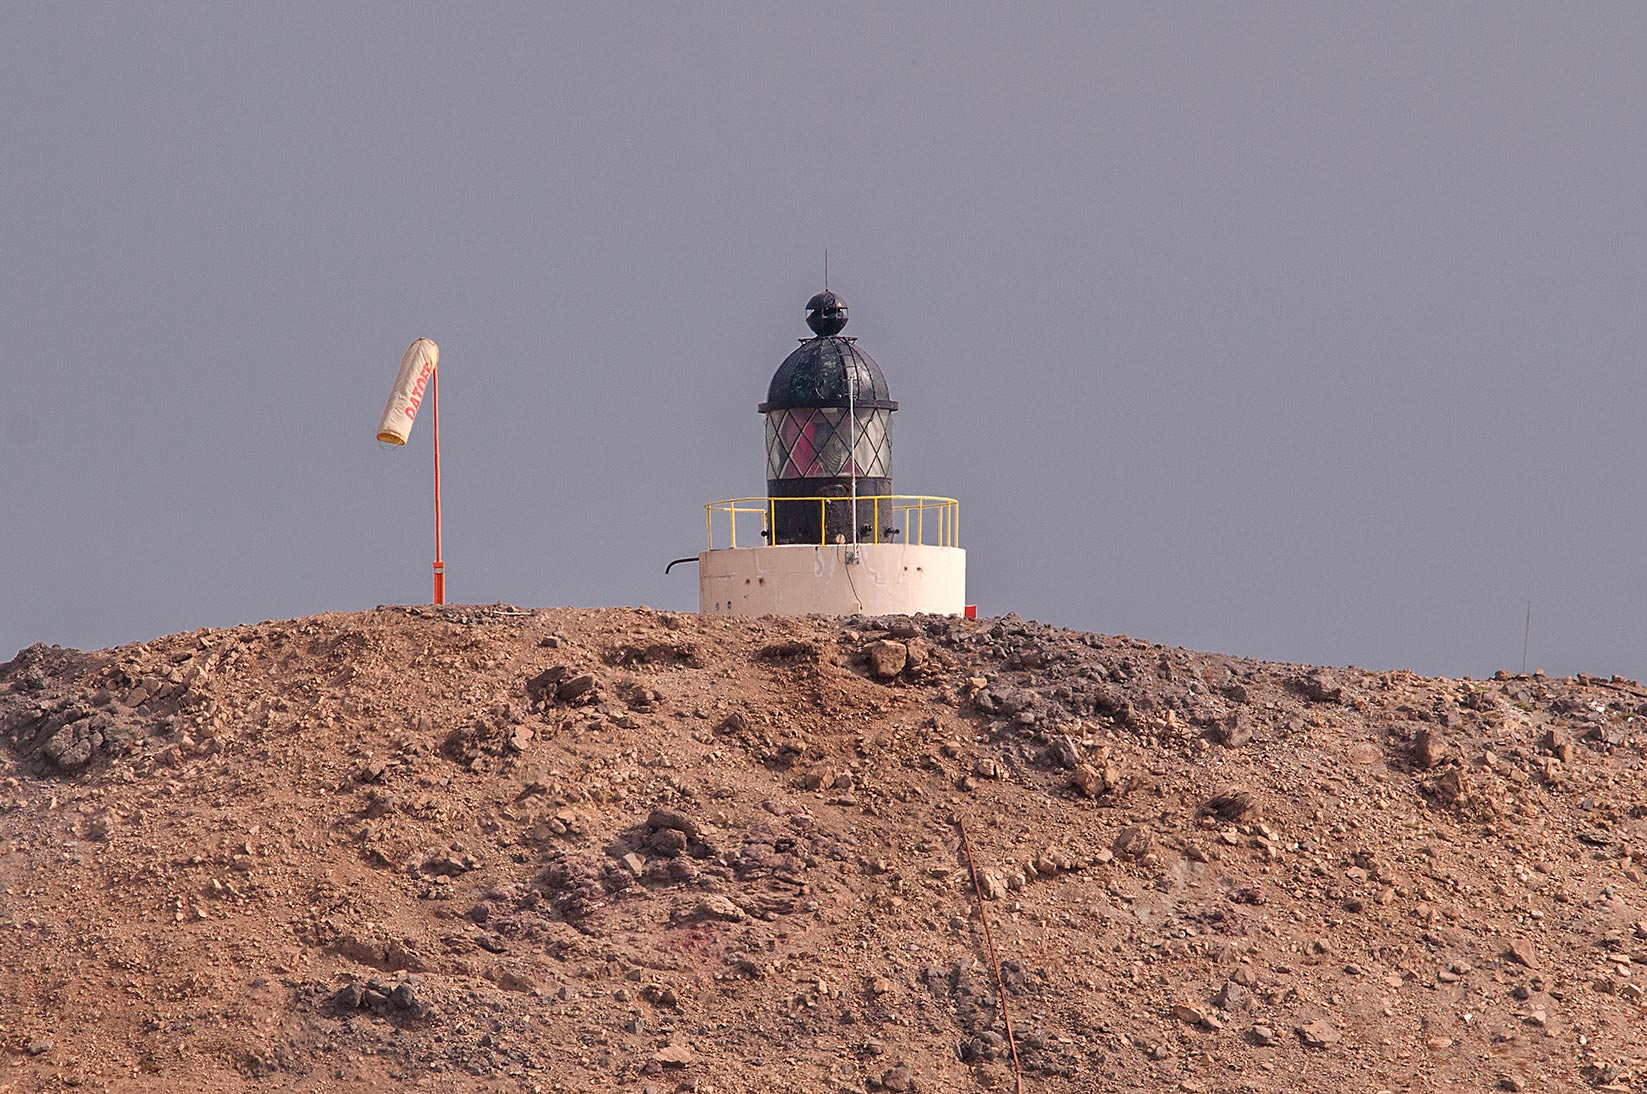 Haloul Island Lighthouse situated on the summit...west from oil tank installation. Qatar